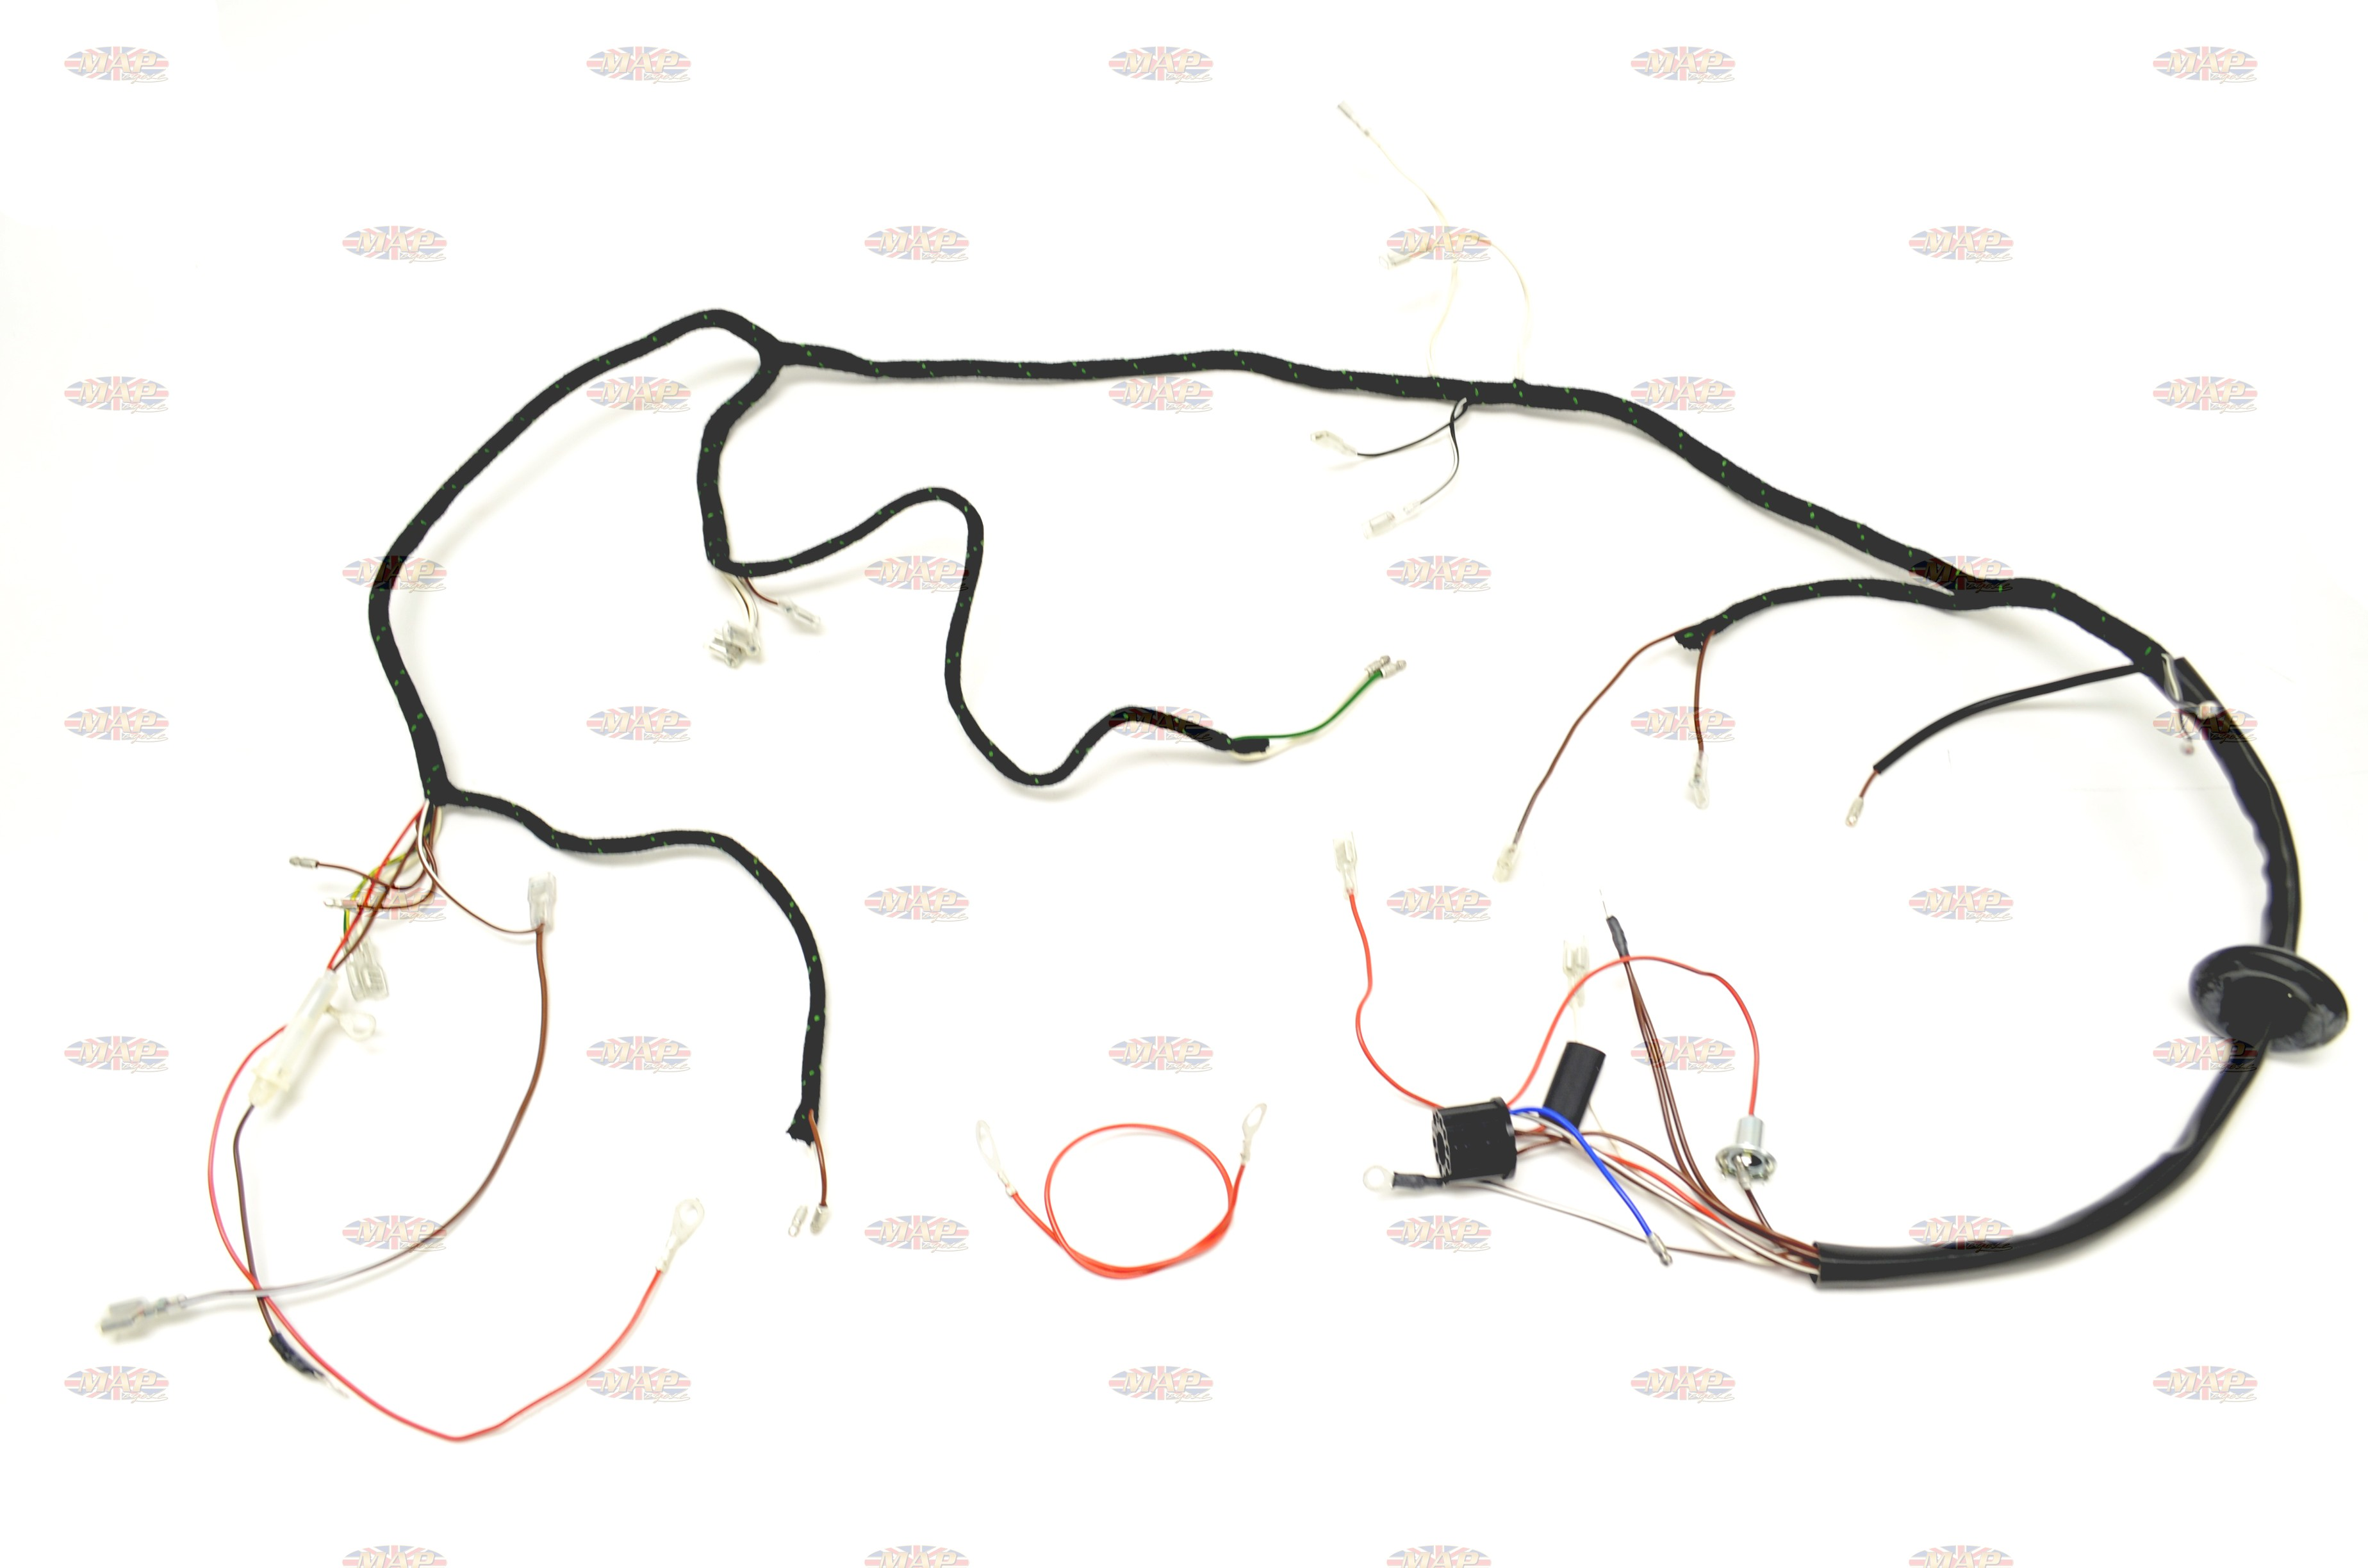 triumph 1967 t90 t100 t120 tr6 uk made quality wiring harness rh mapcycle com